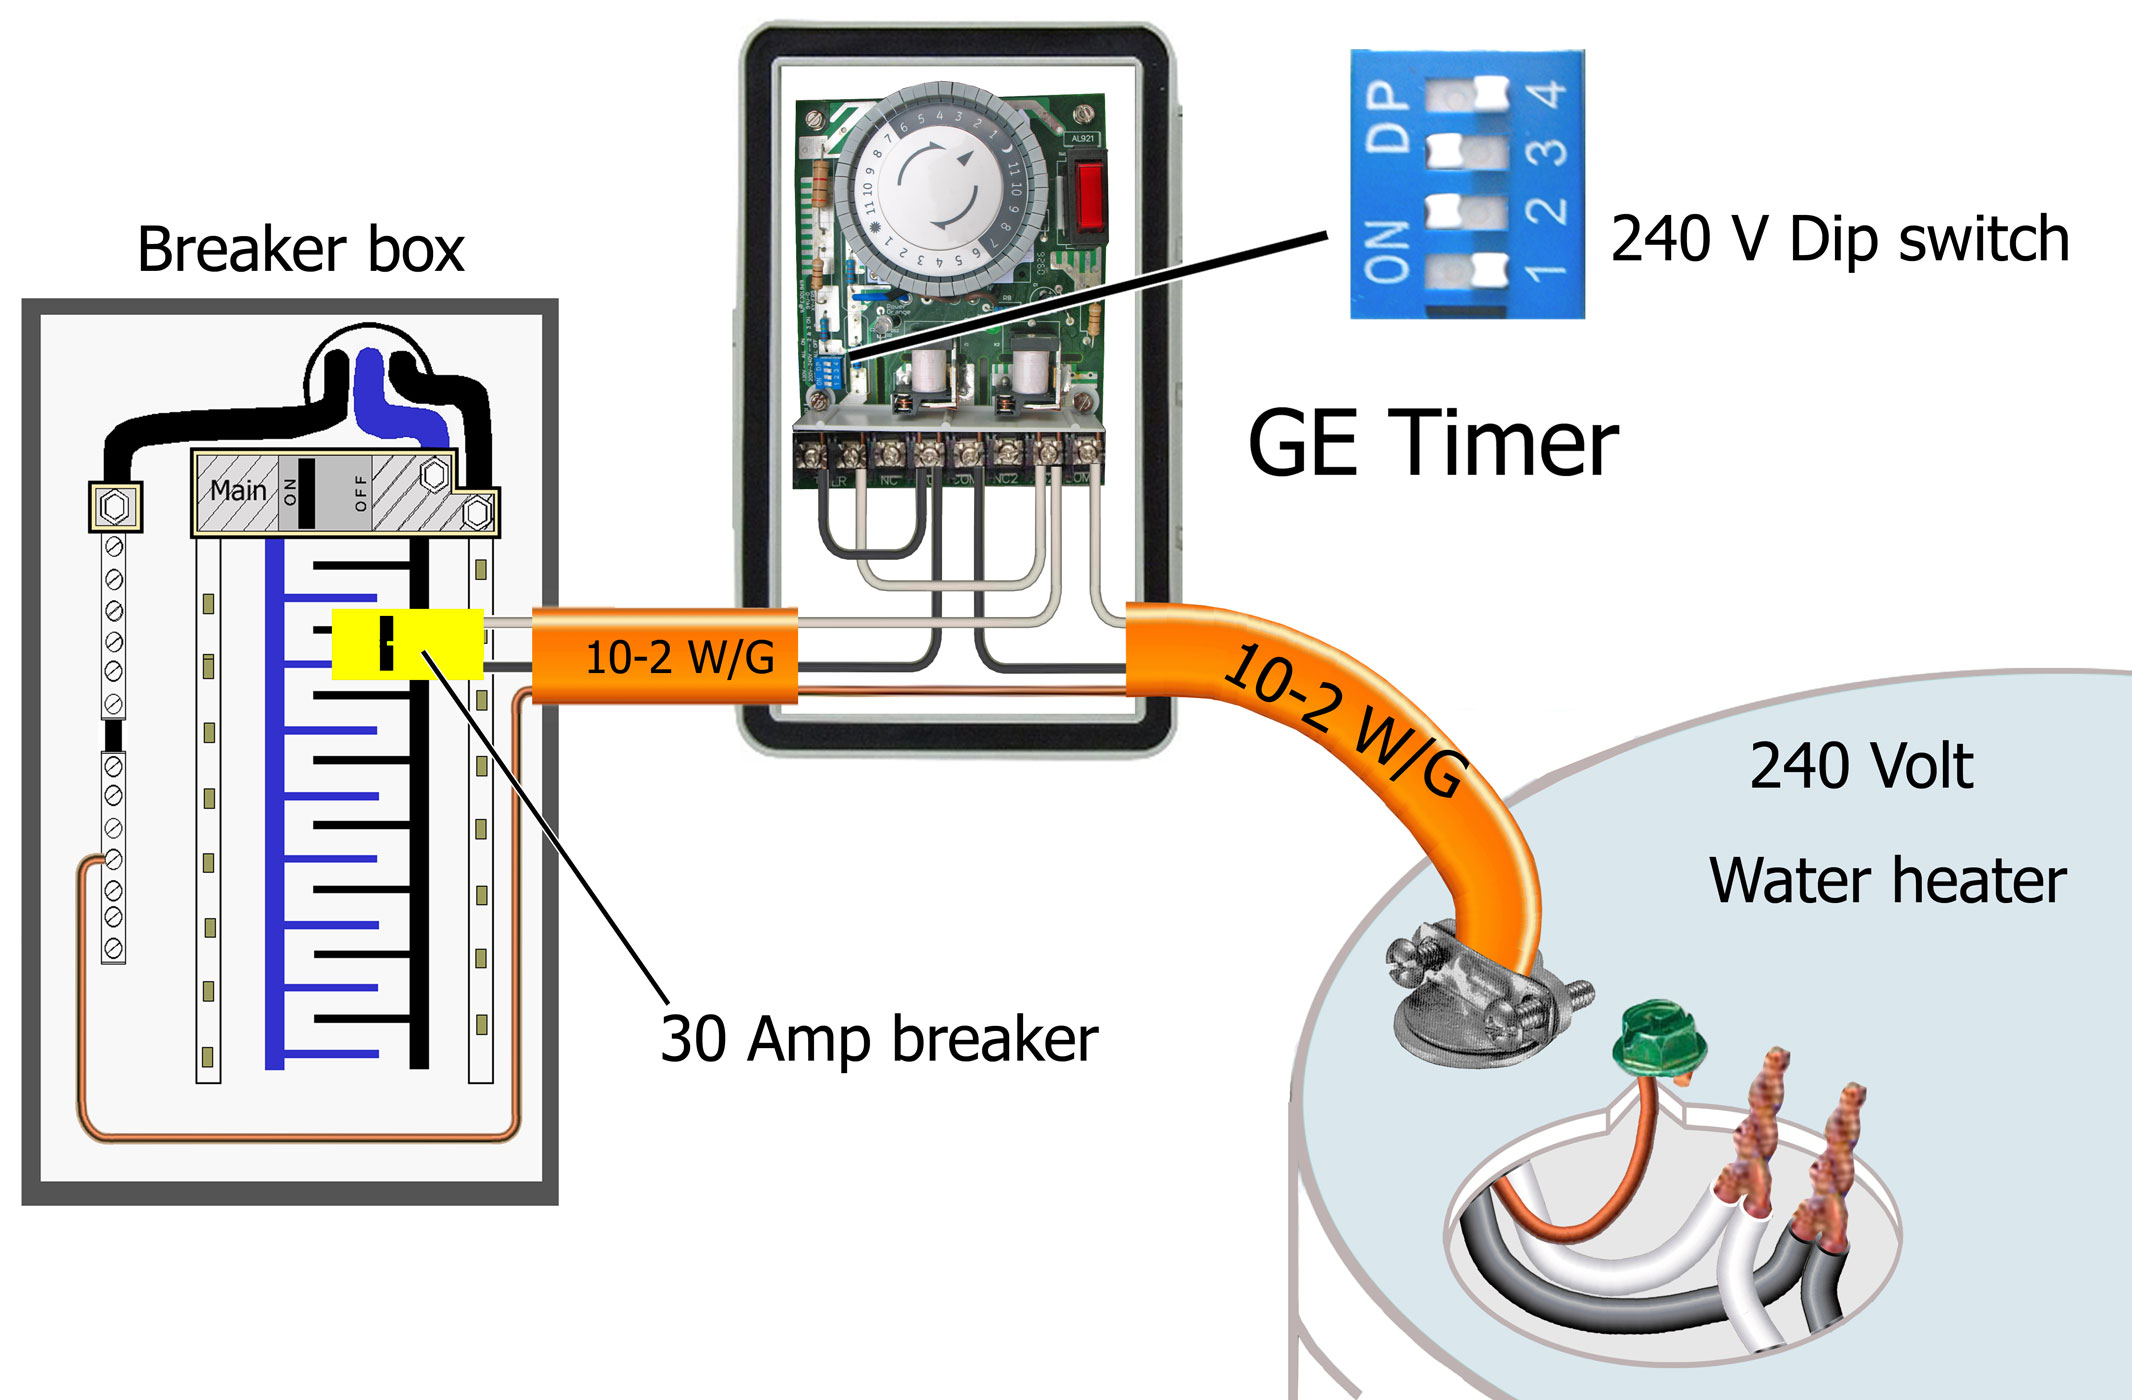 GE to water heater 500 how to wire ge 15087 timer wiring diagram hot water heater at soozxer.org